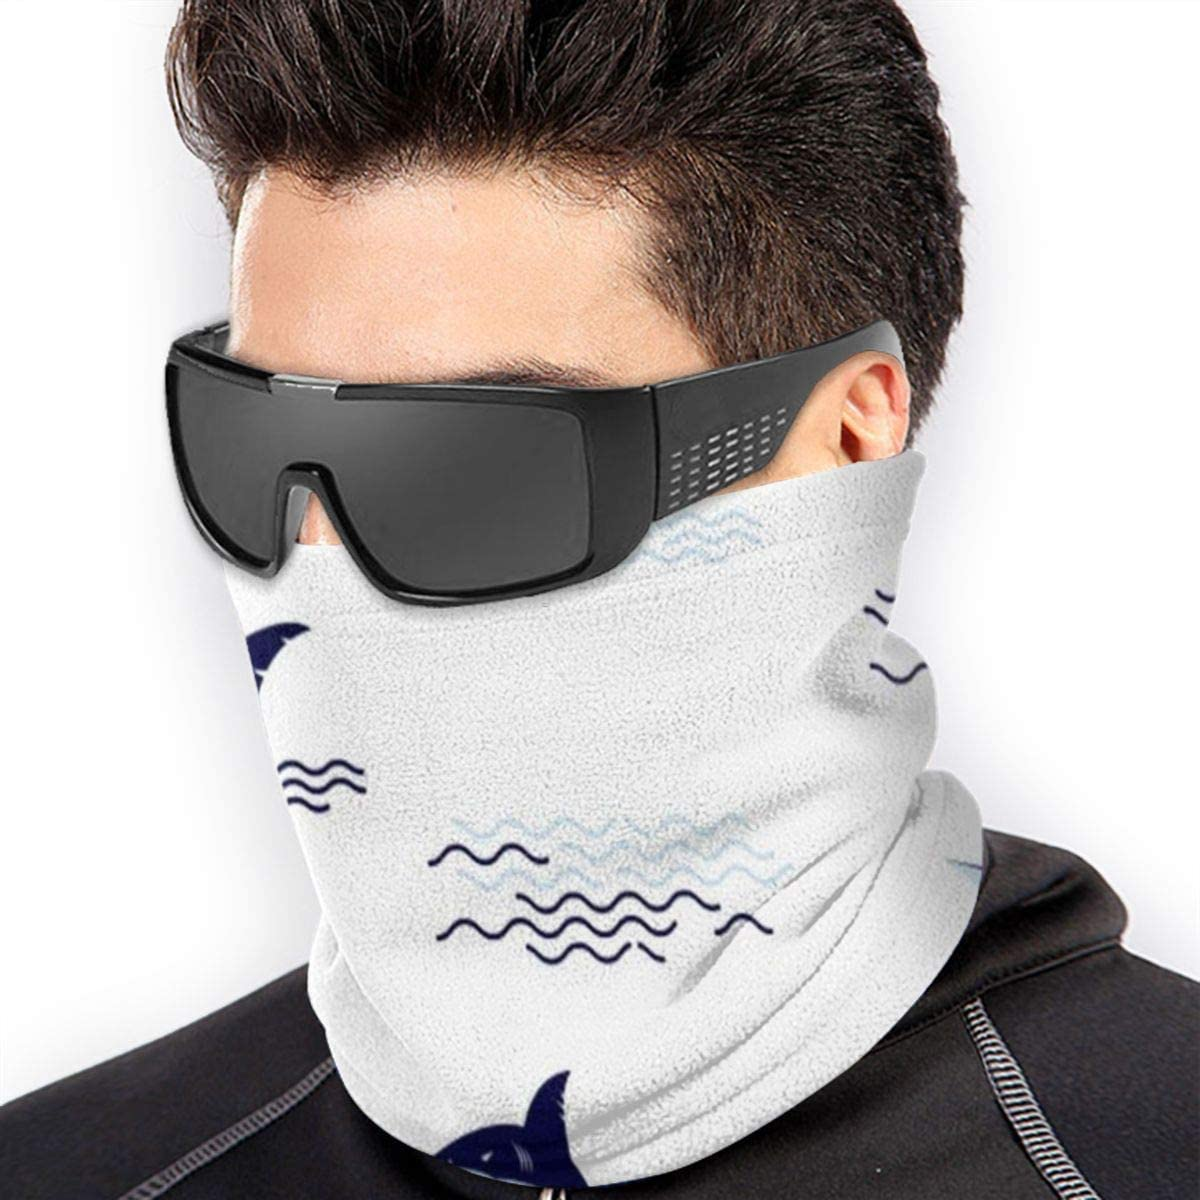 Shark Fin Tail Drawing Unisex Winter Fleece Neck Warmer Gaiters Hairband Cold Weather Tube Face Mask Thermal Neck Scarf Outdoor UV Protection Party Cover Black